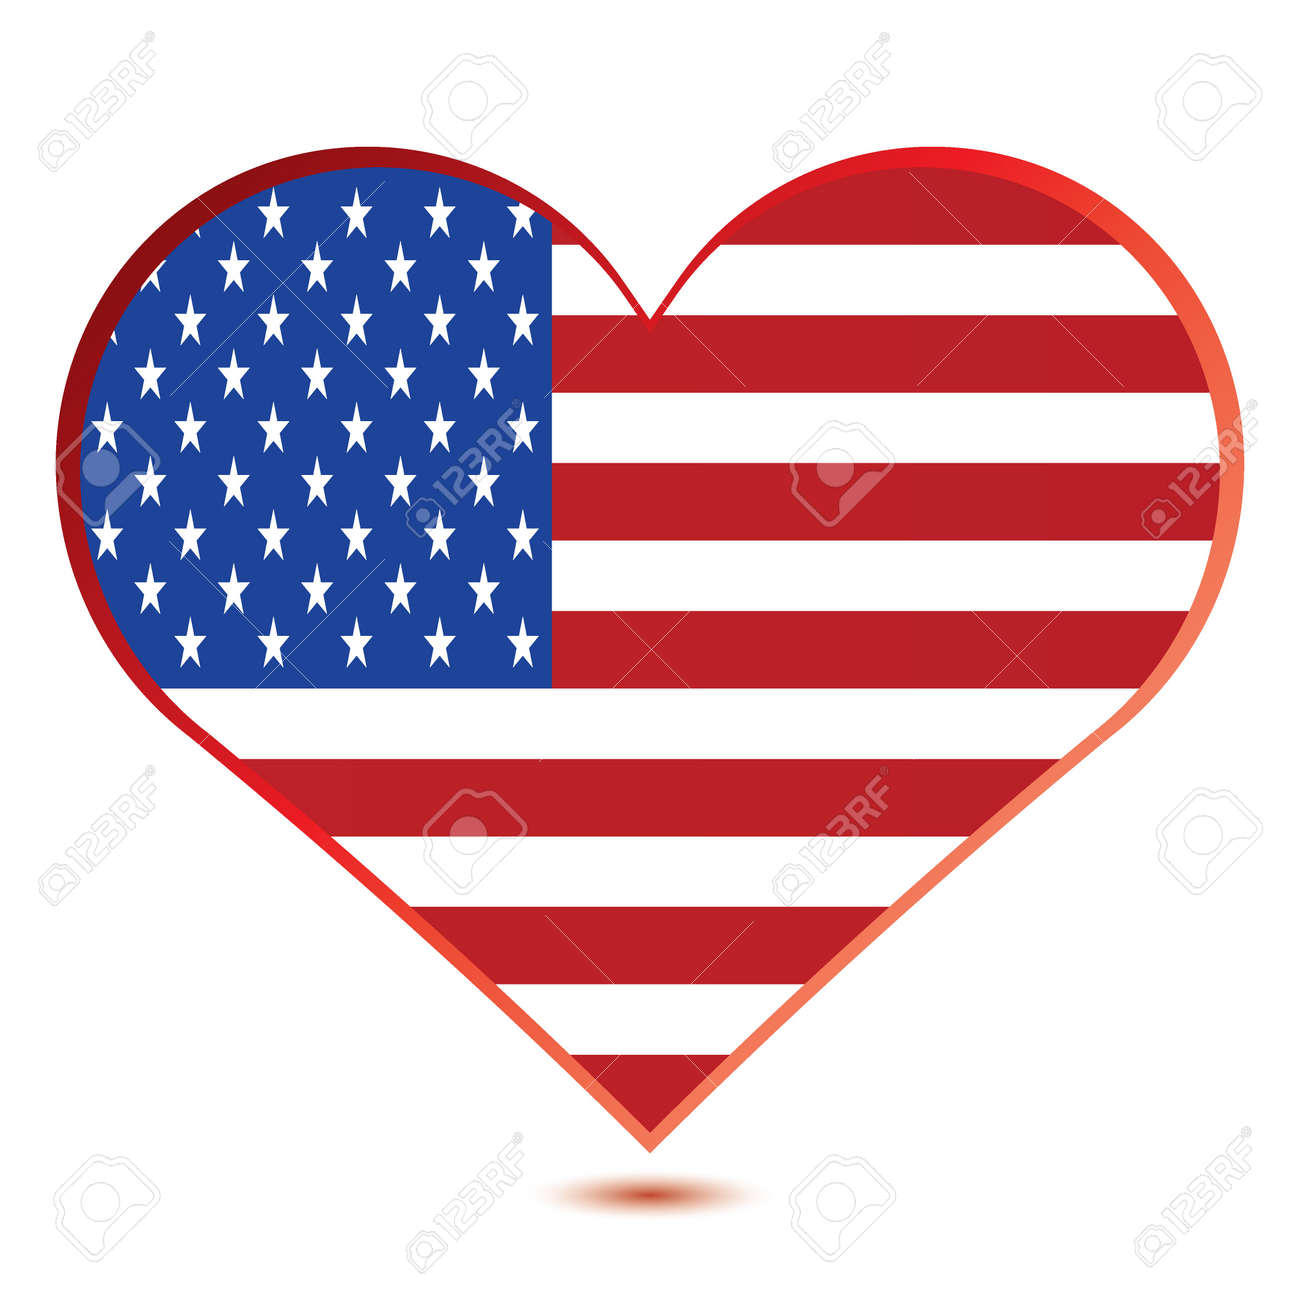 Glossy illustration showing a heart with the flag of the United States of America Stock Vector - 20458823